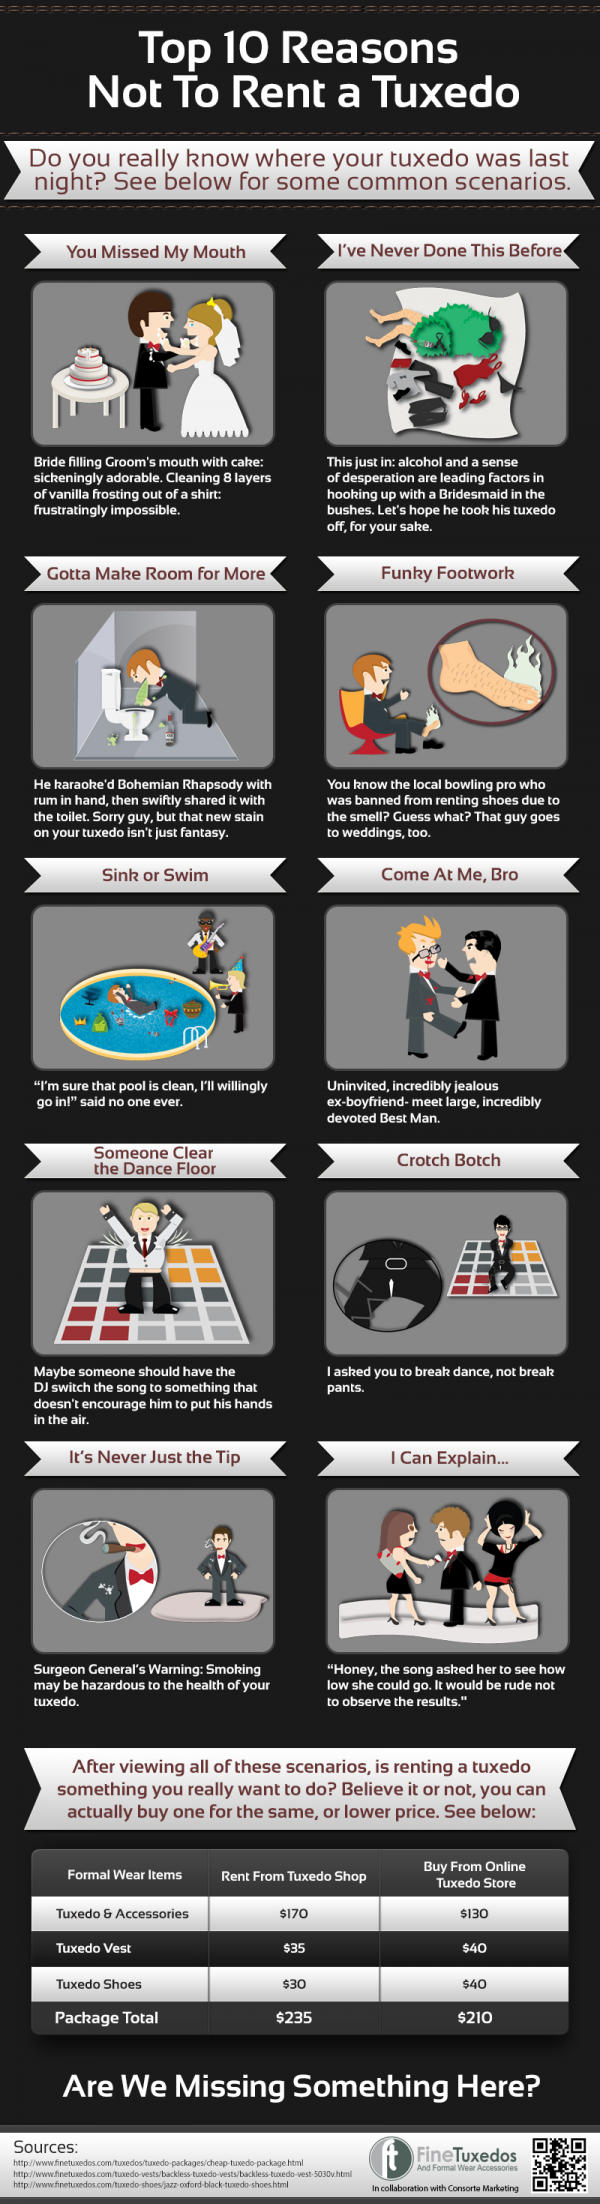 noid-top-ten-reasons-not-to-rent-a-tuxedo-infographic